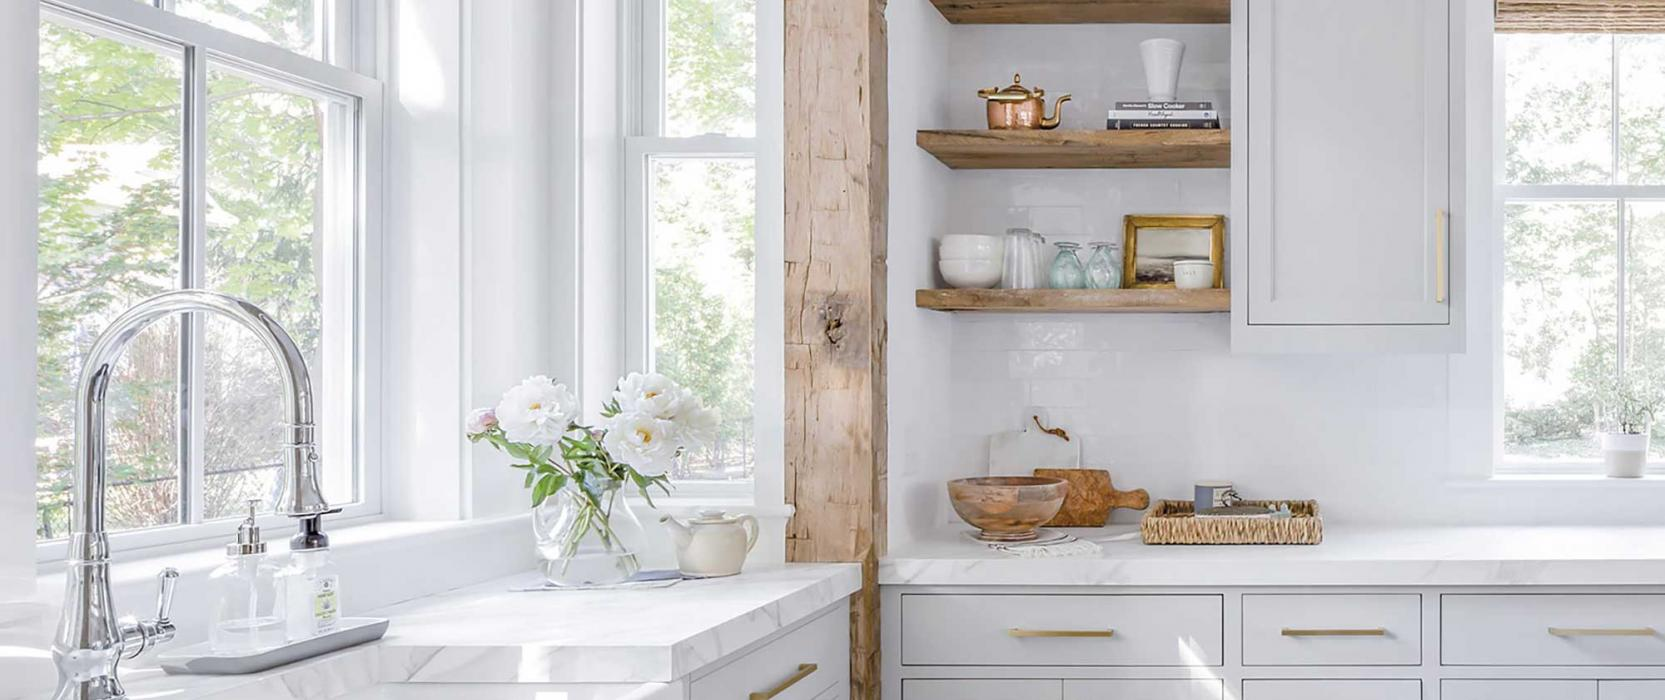 Wellesley Kitchen and Home Tour